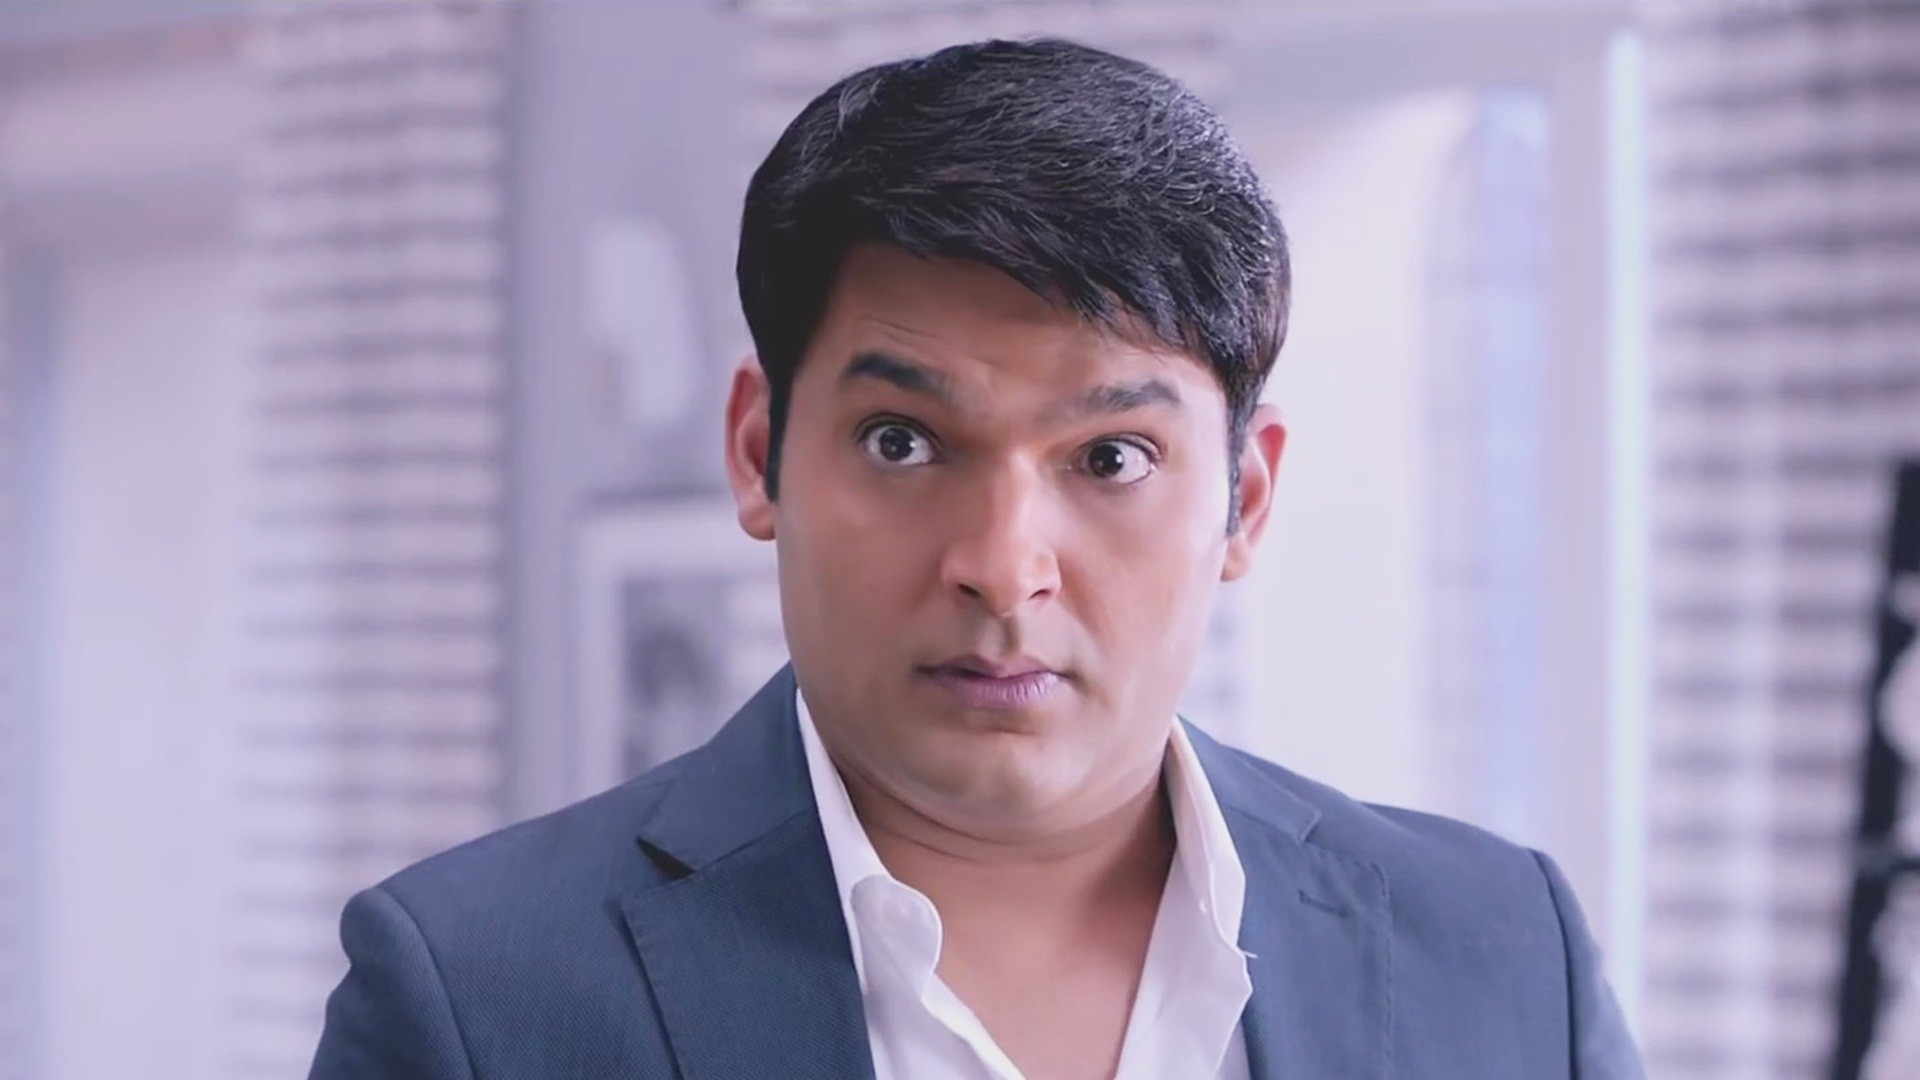 Comedy Show 'The Kapil Sharma Show' to go off air